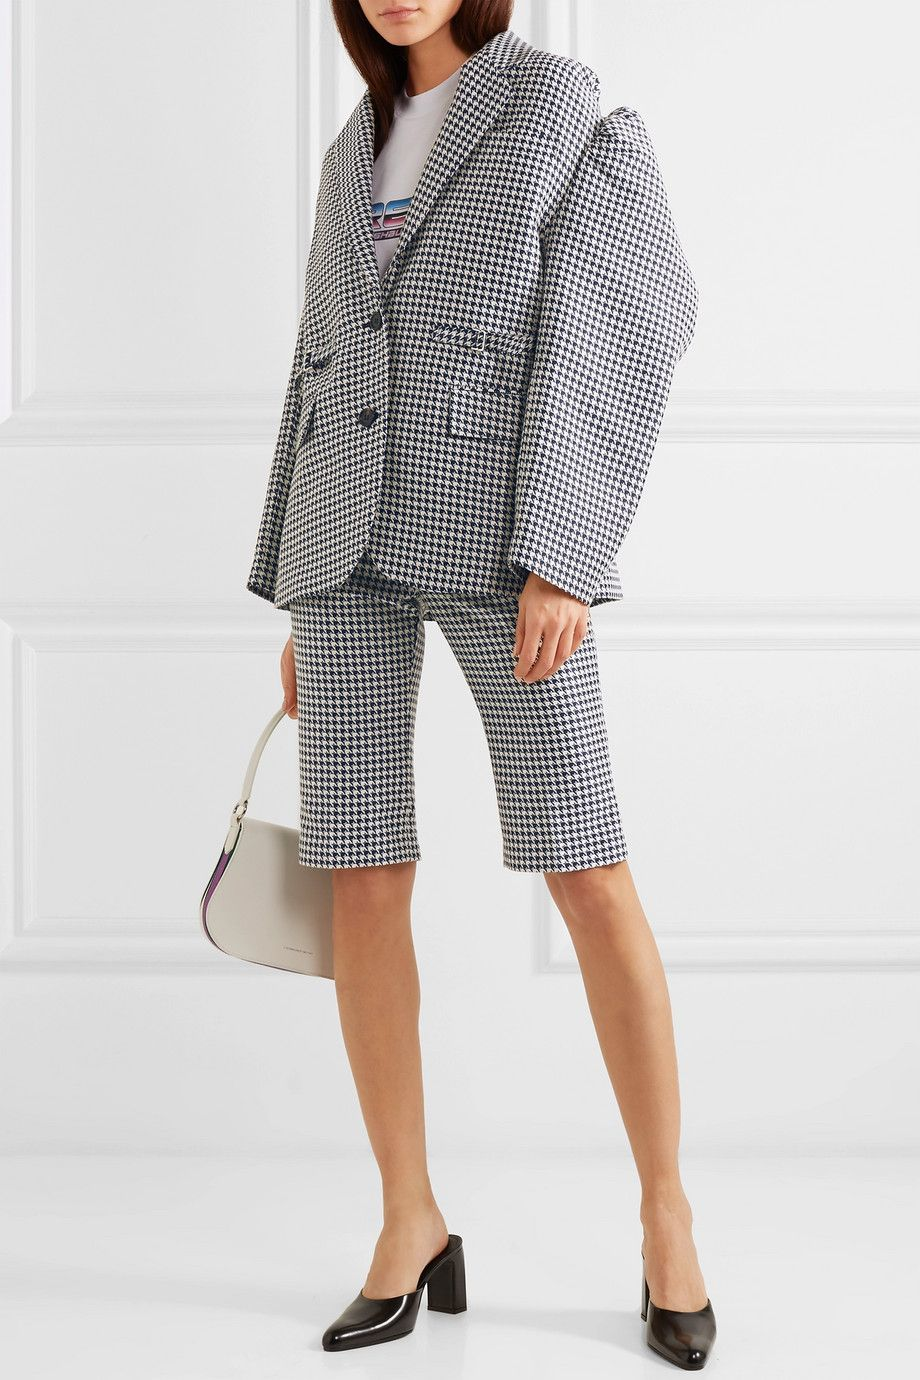 pushbutton-oversized-houndstooth-jacquard-short-suit